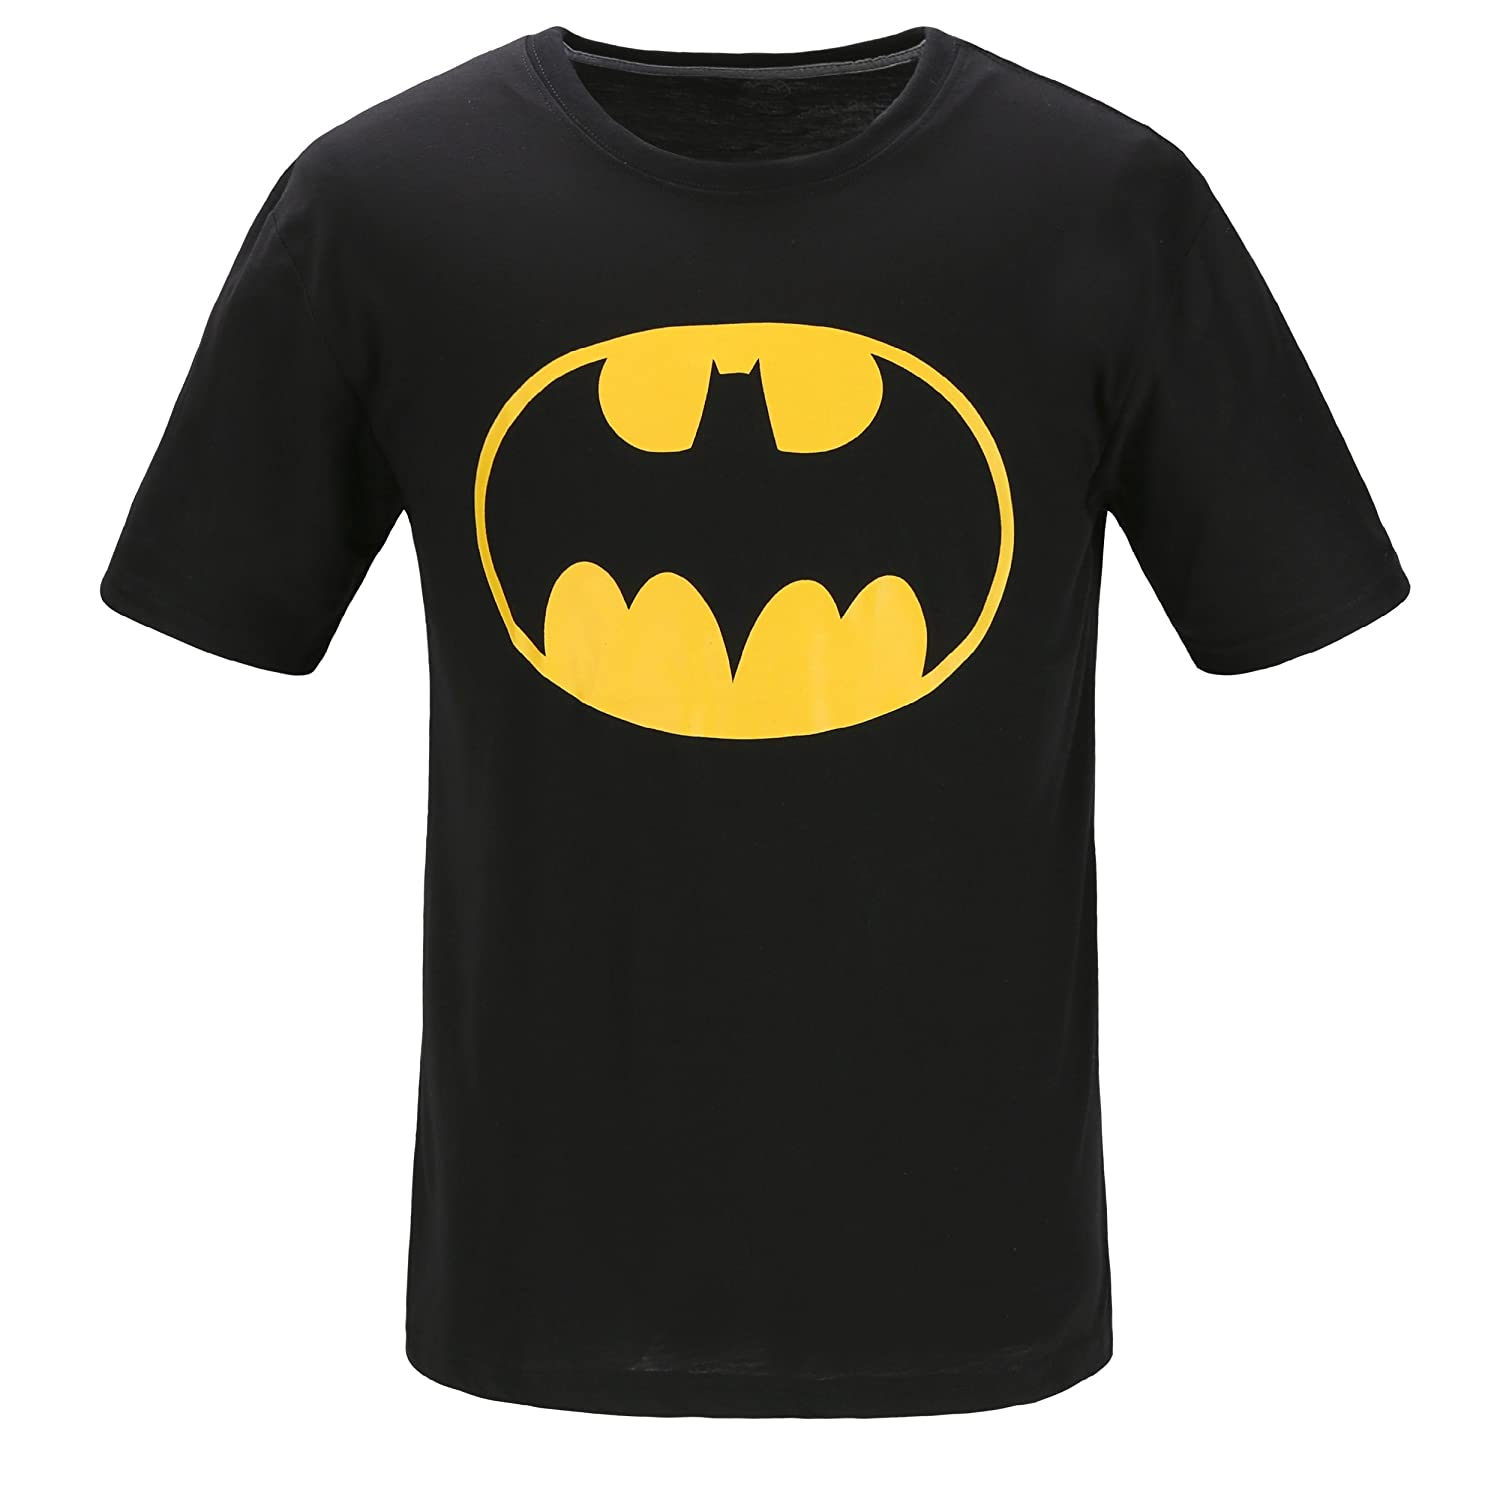 6dc99efd4 √GREAT GIFT IDEA - This Batman Classic Logo shirt is the perfect holiday  gift and birthday present. Treat yourself to one and pair with a pair of  shorts or ...